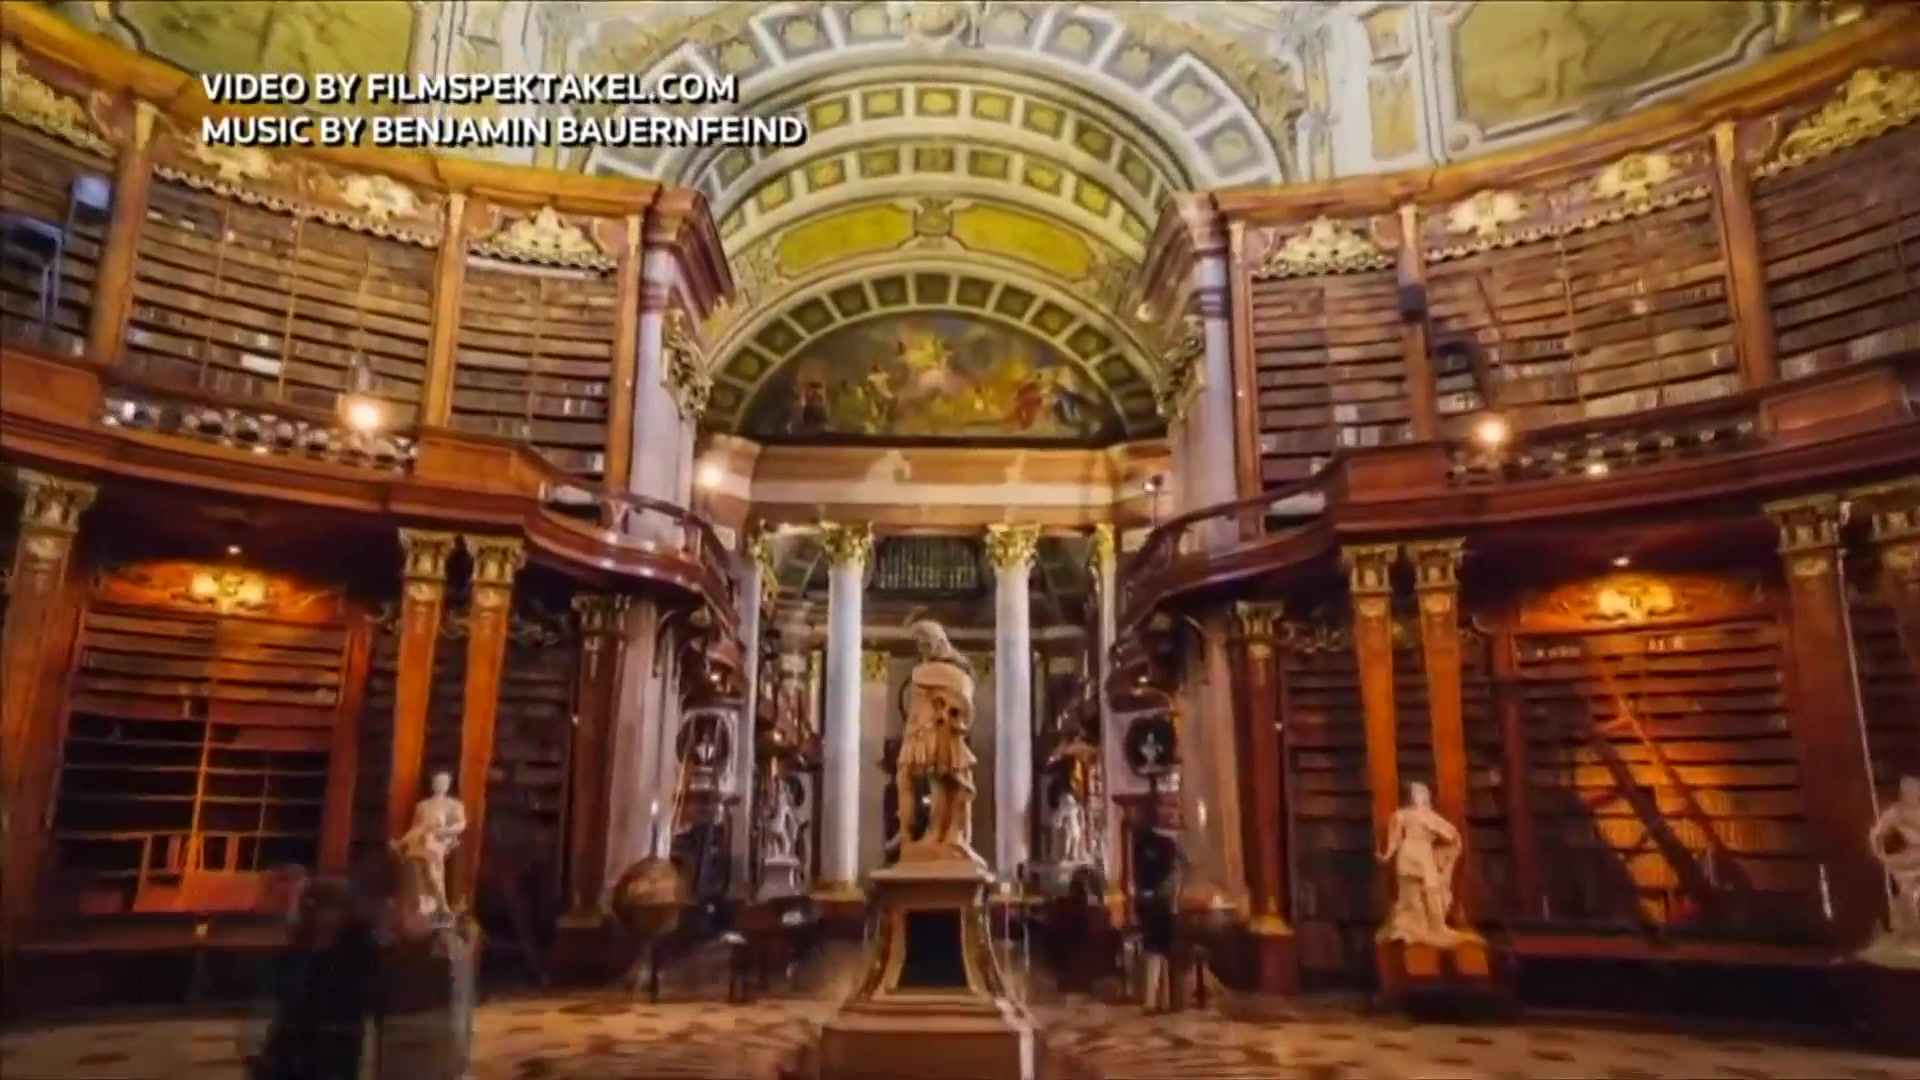 A Whistle Stop Tour of the City of Vienna Through a Time-Lapse